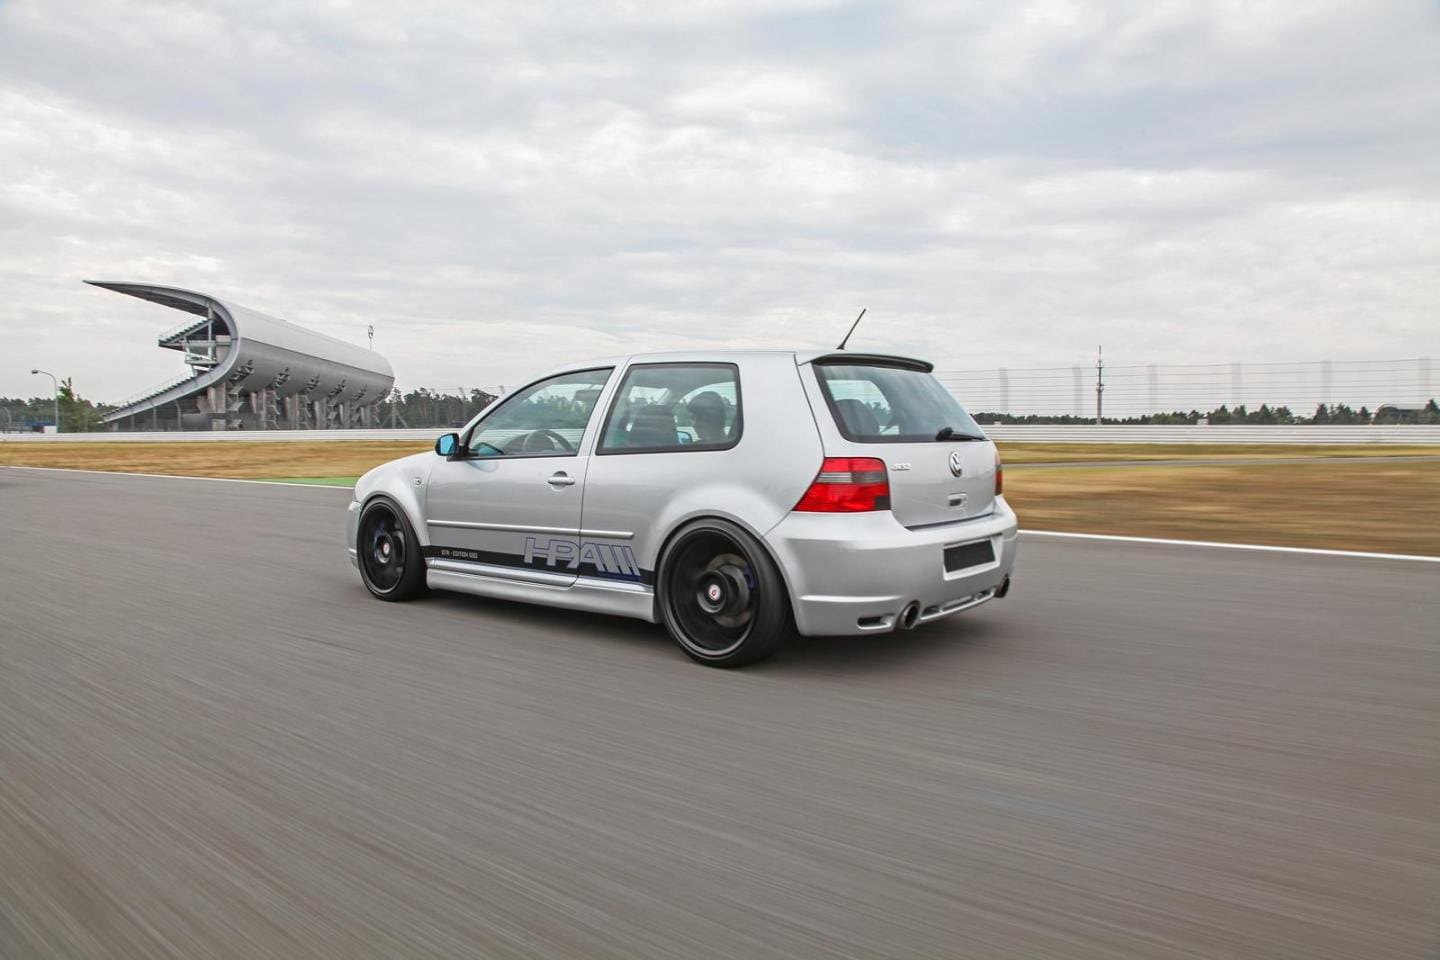 Volkswagen_Golf_IV_R32_HPerformance_DM_8